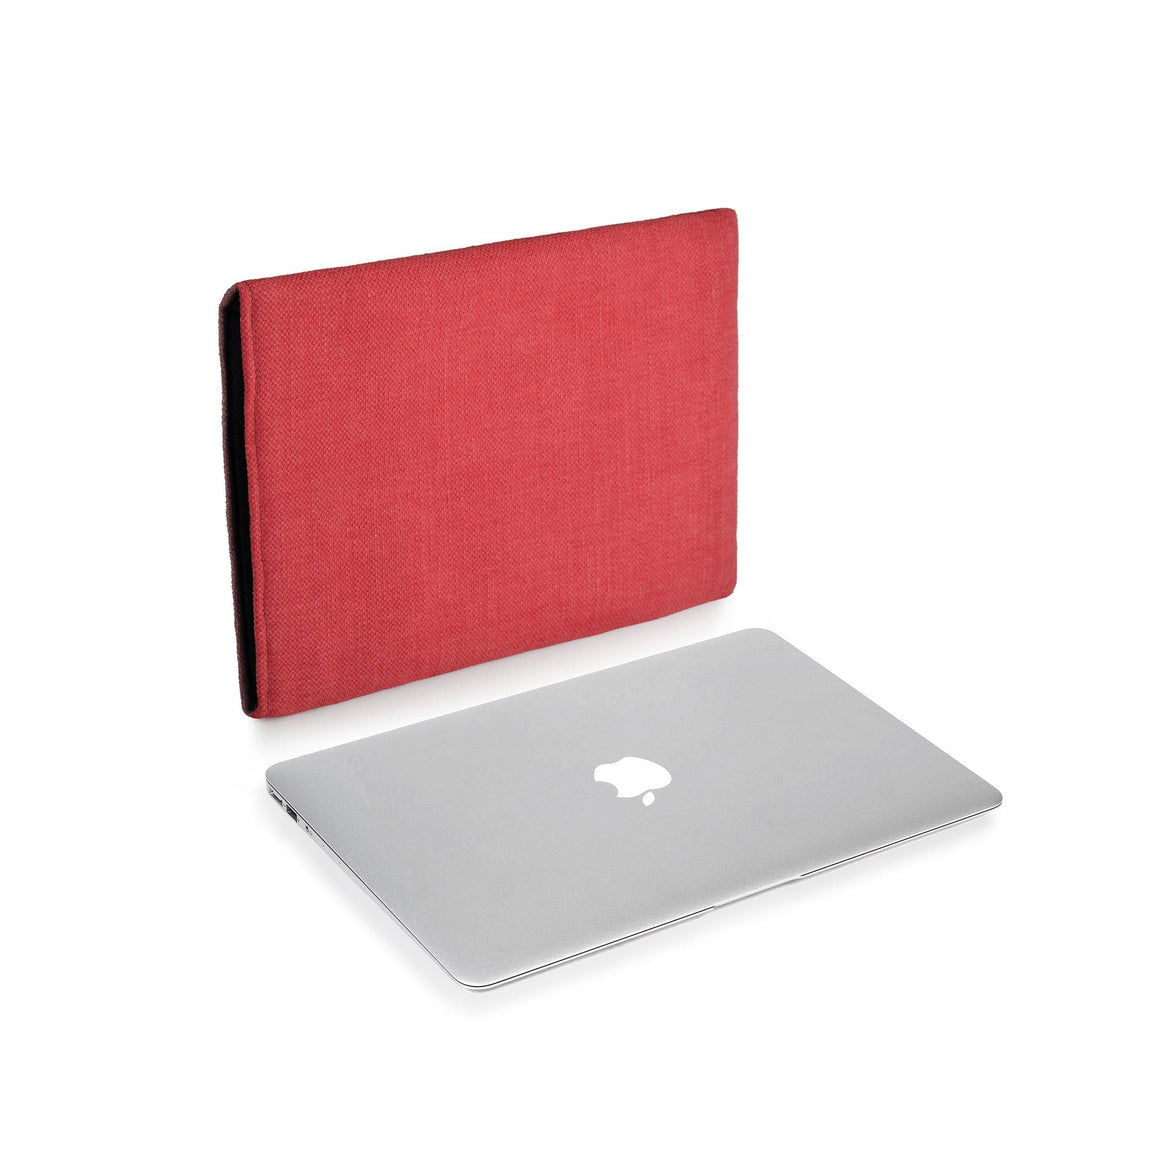 MacBook Linen Red